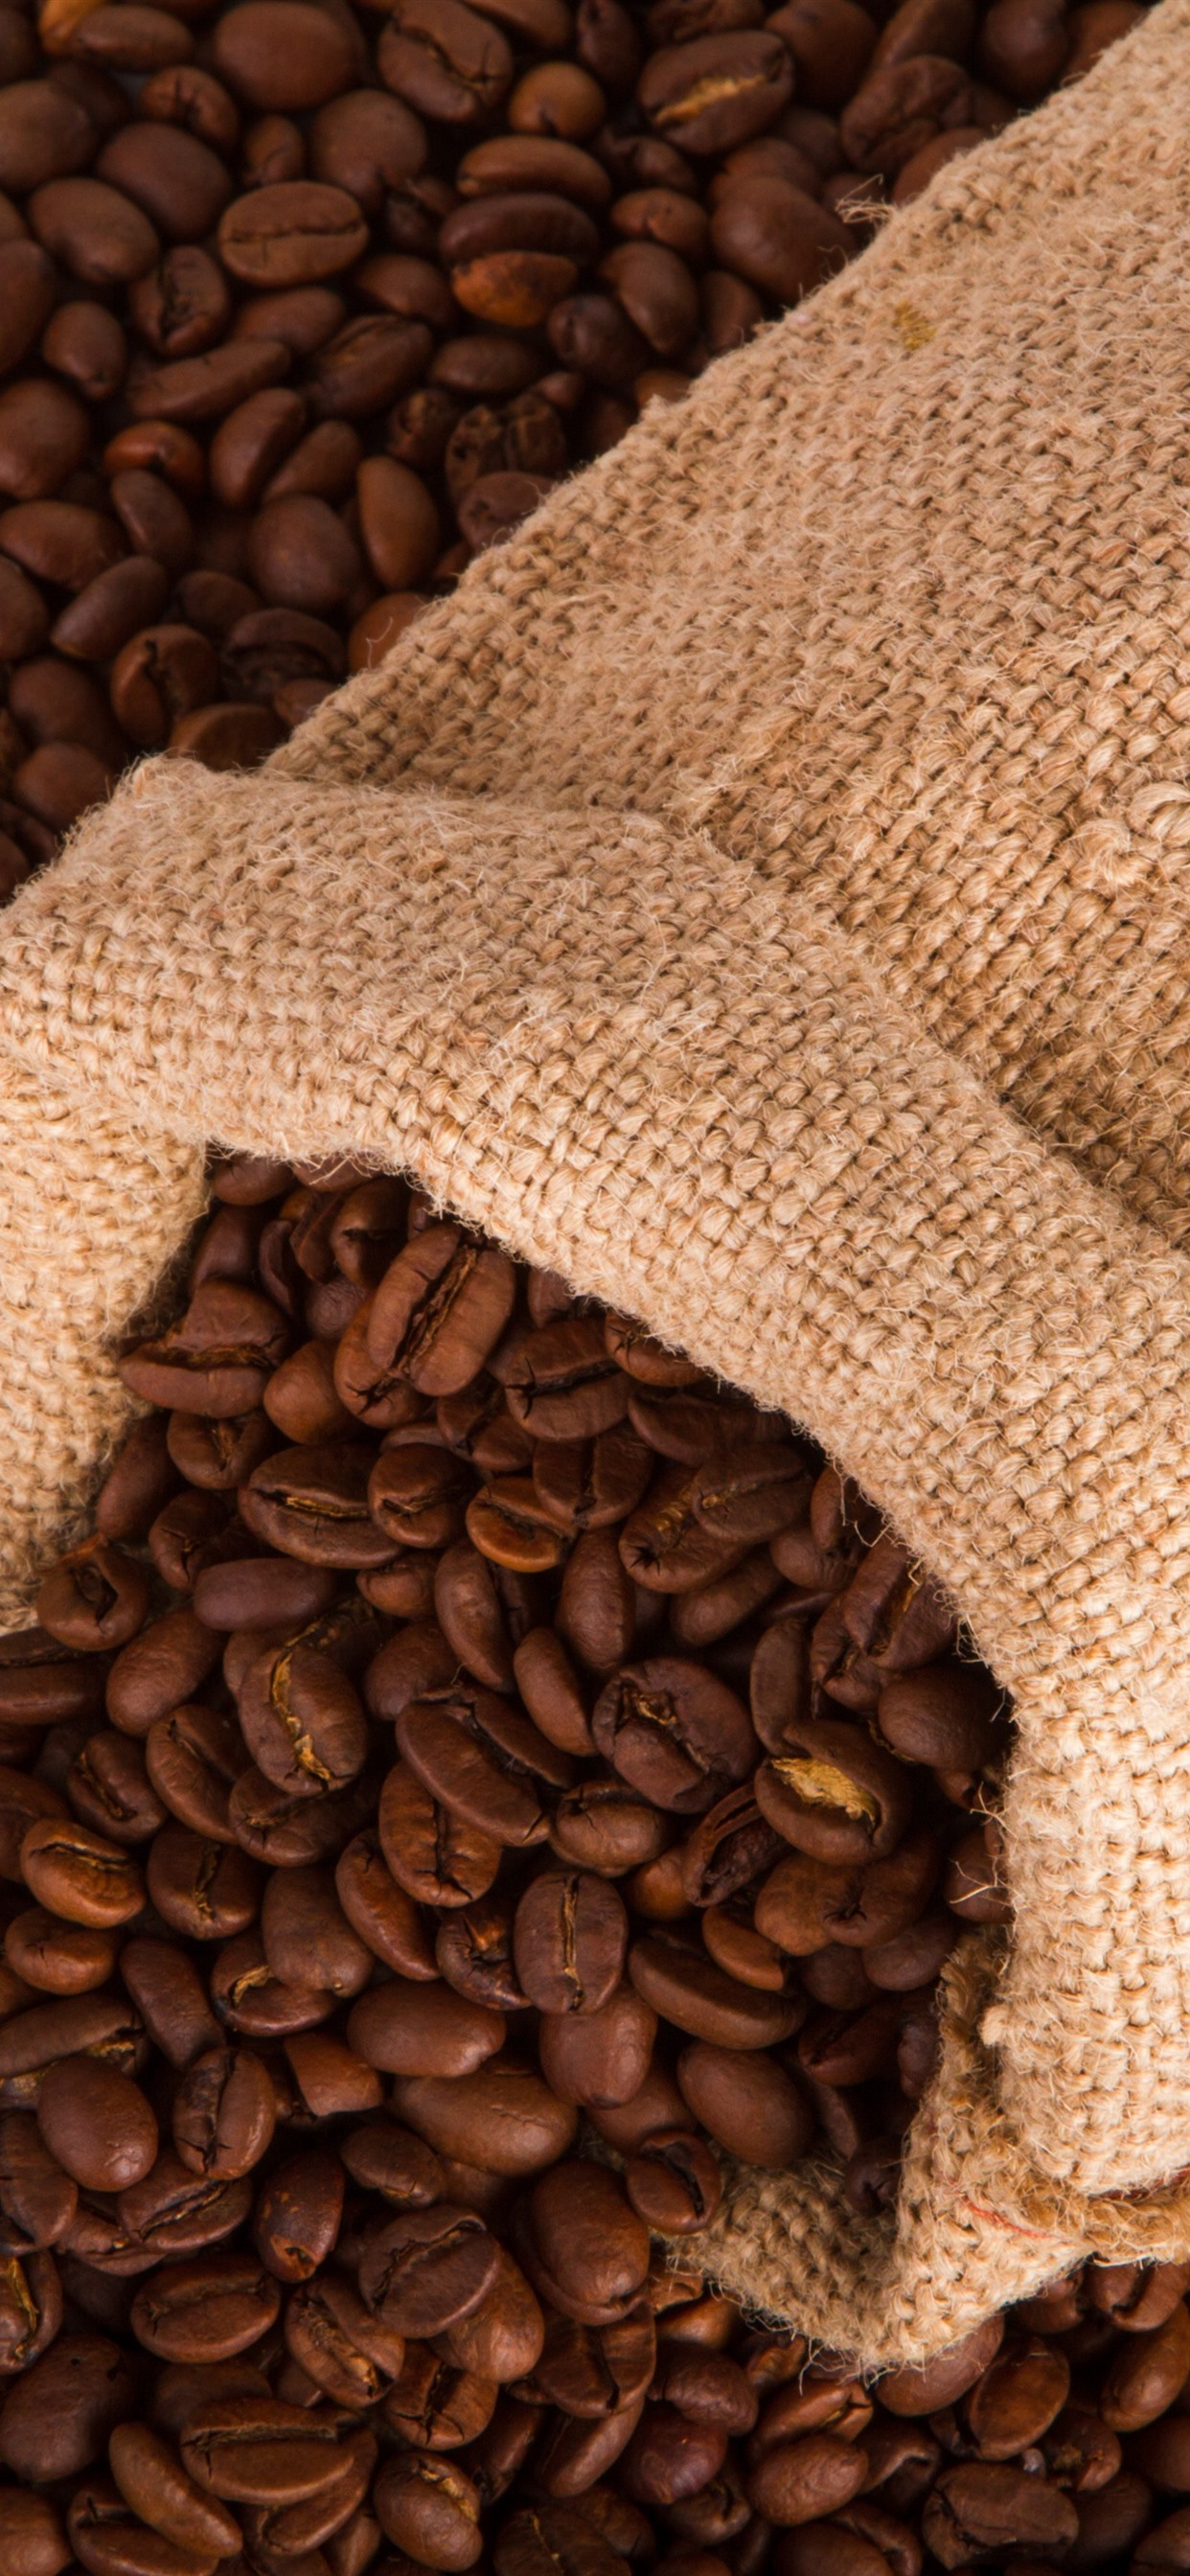 Many Coffee Beans One Bag 1242x2688 Iphone Xs Max Wallpaper